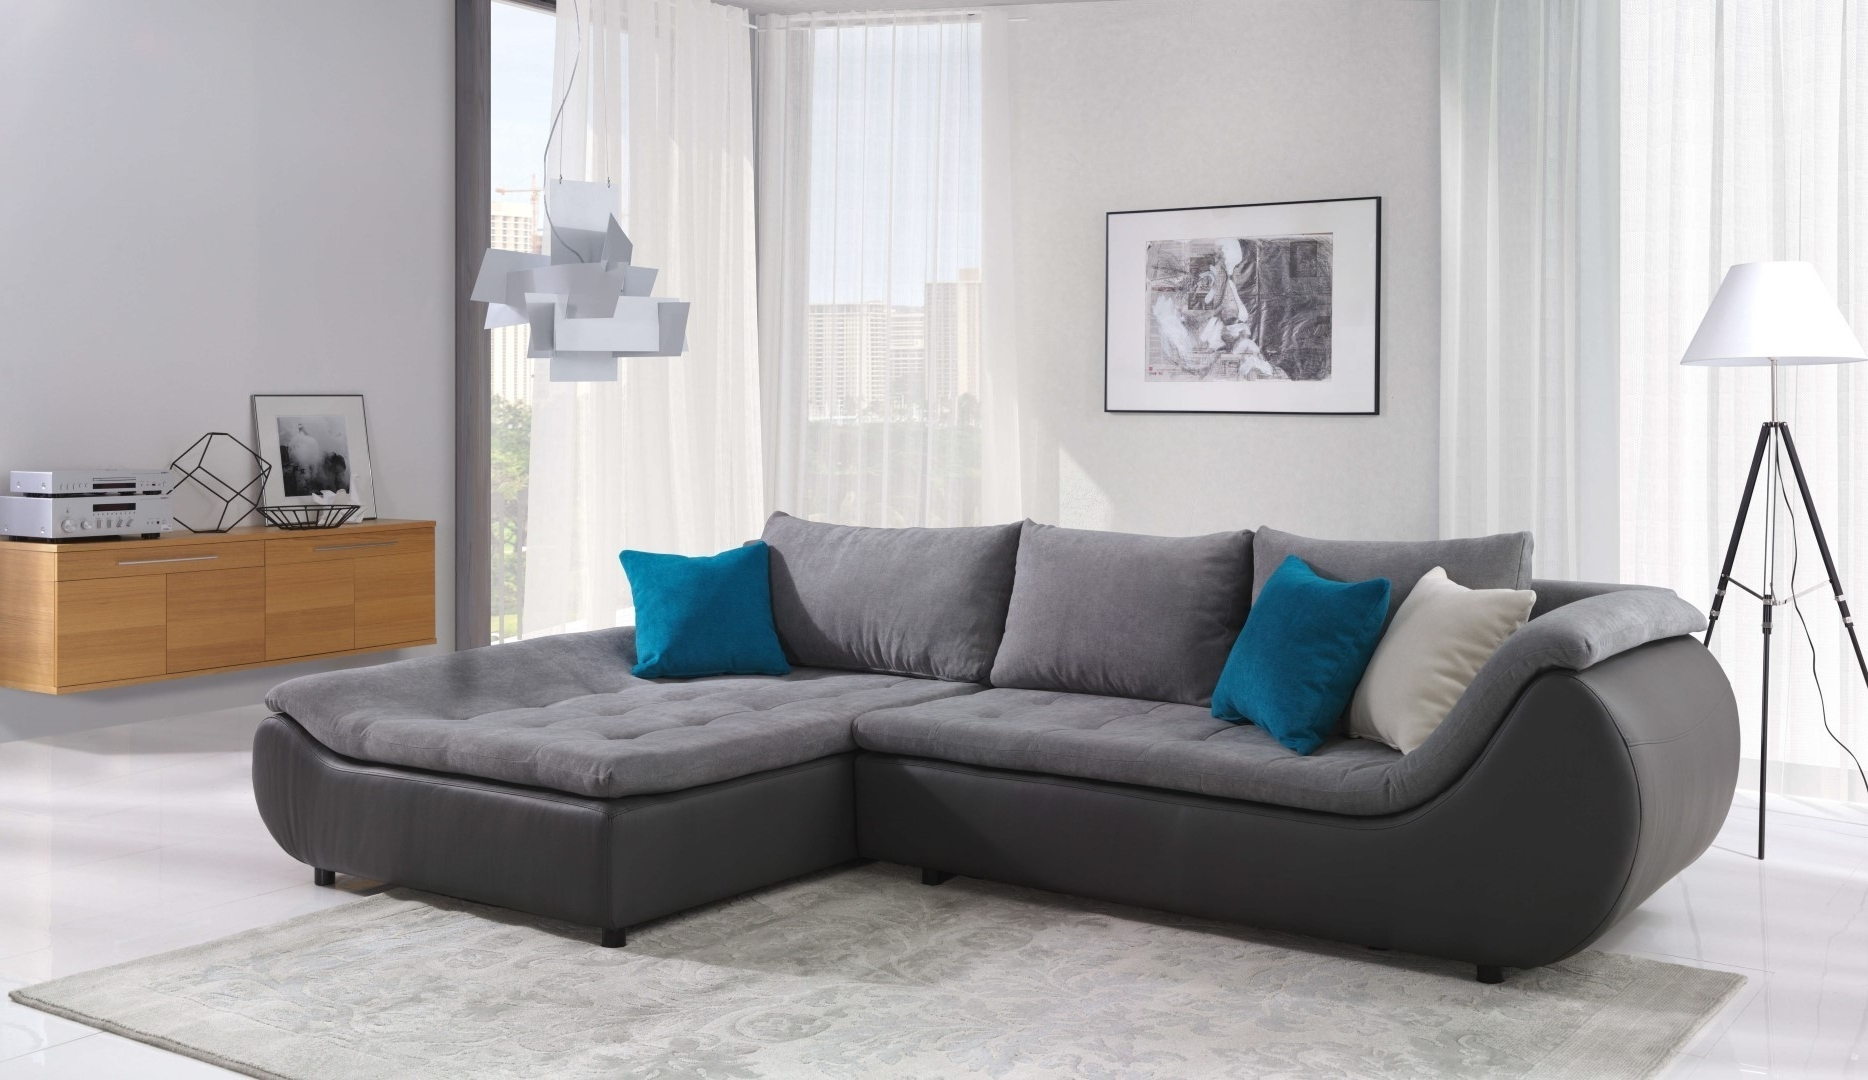 2019 Sectional Sofas Under 500 In Sofa (View 3 of 20)